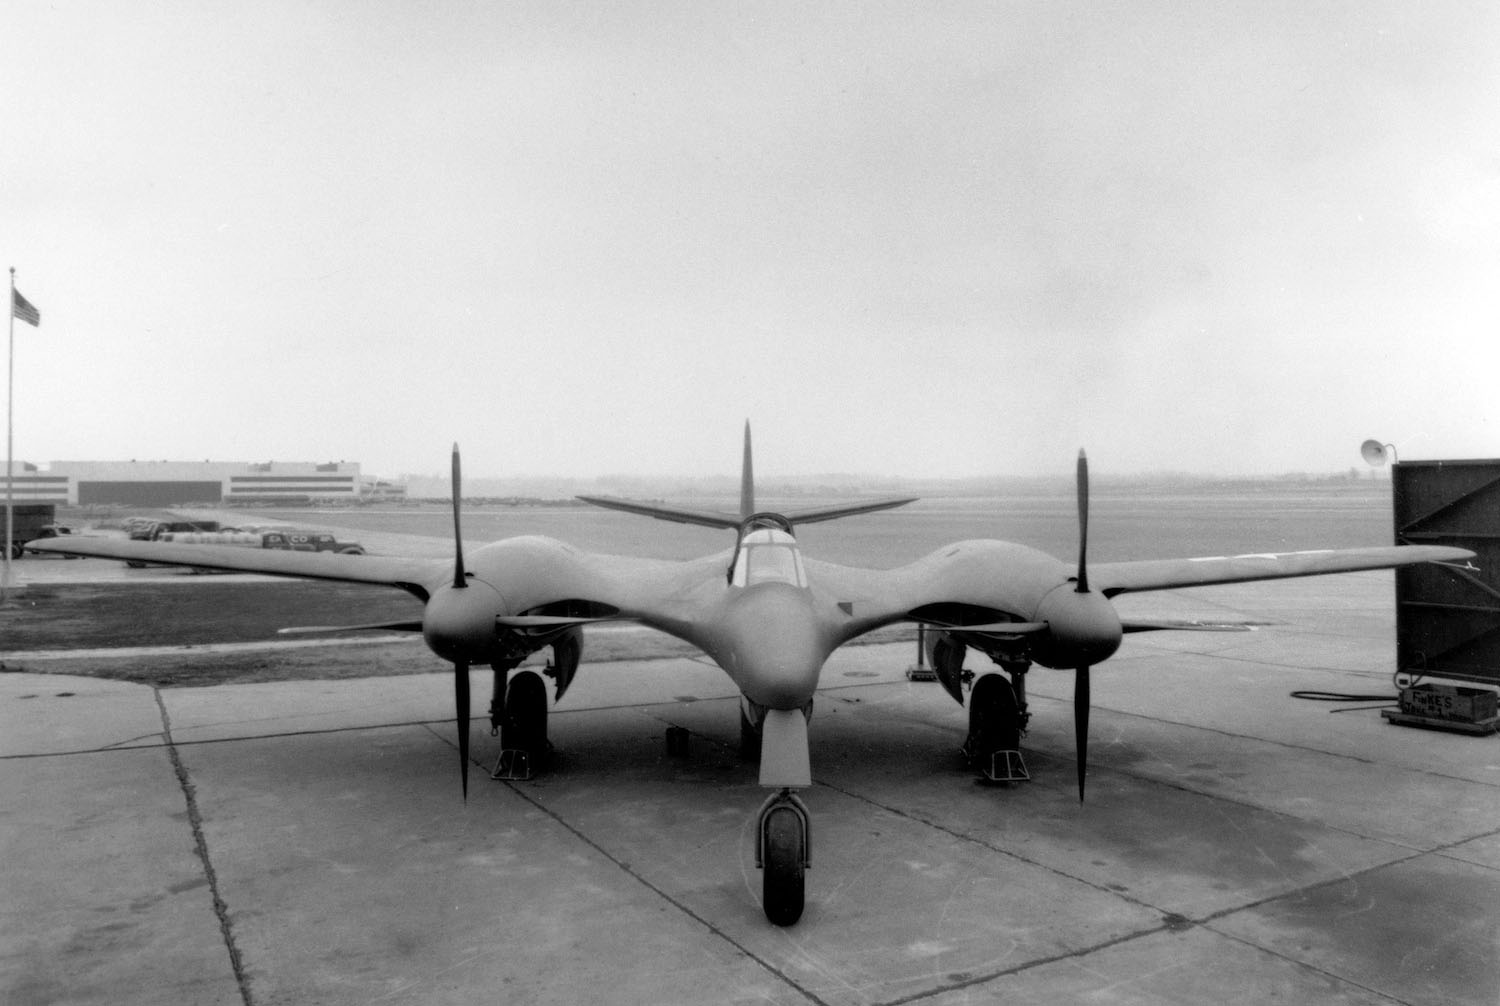 One of a Kind: McDonnell XP-67 Bat